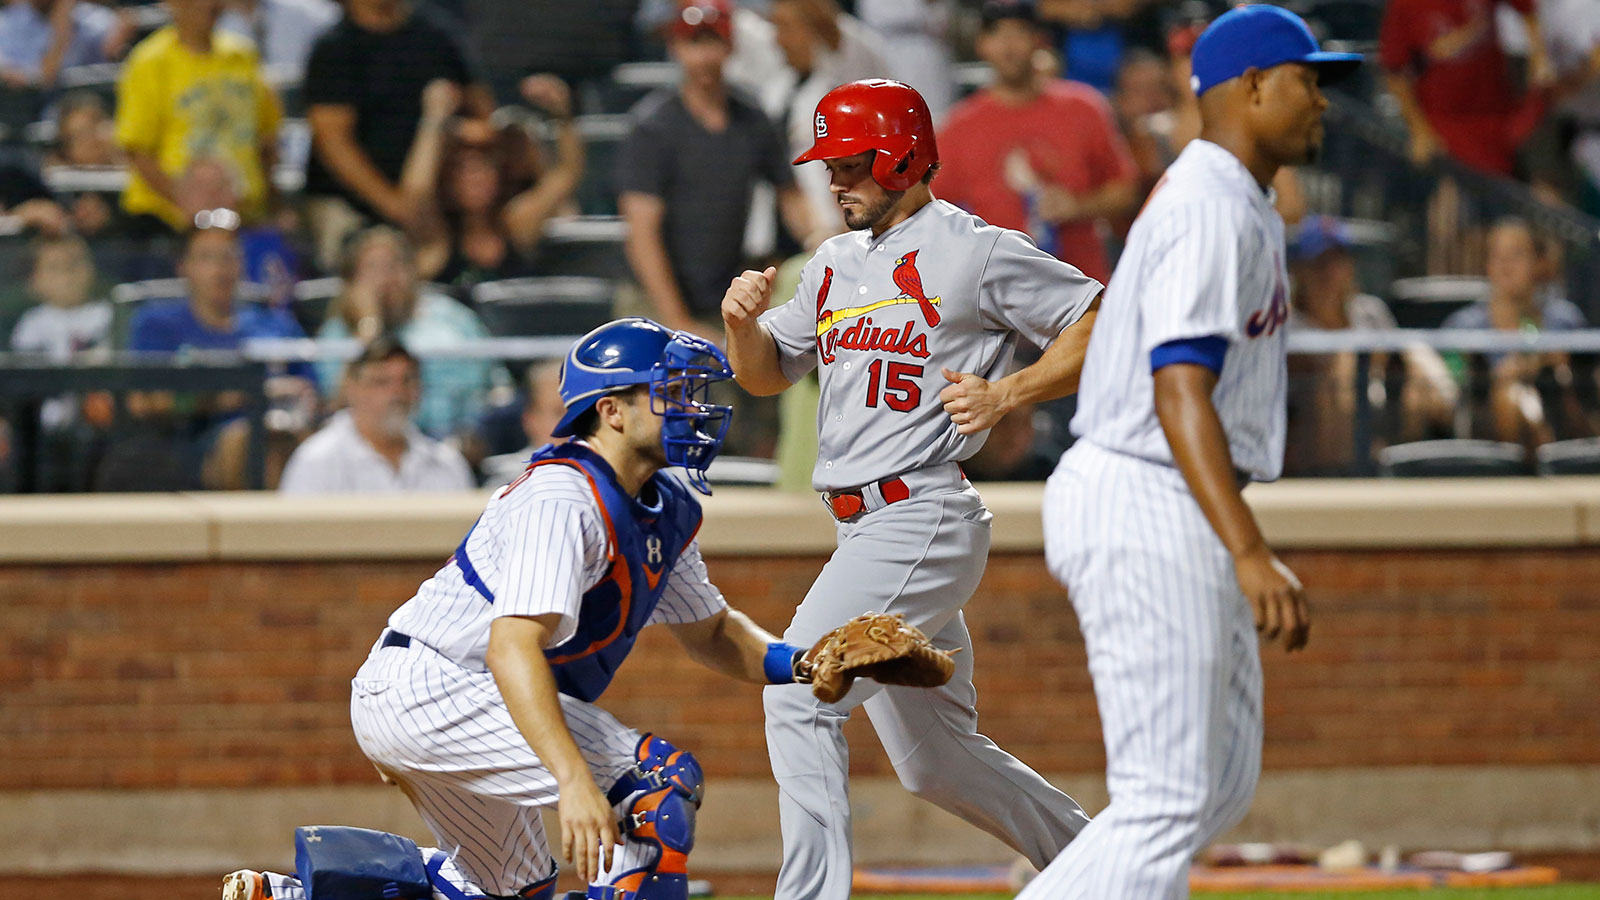 Cardinals snap Familia's saves streak, rally past Mets